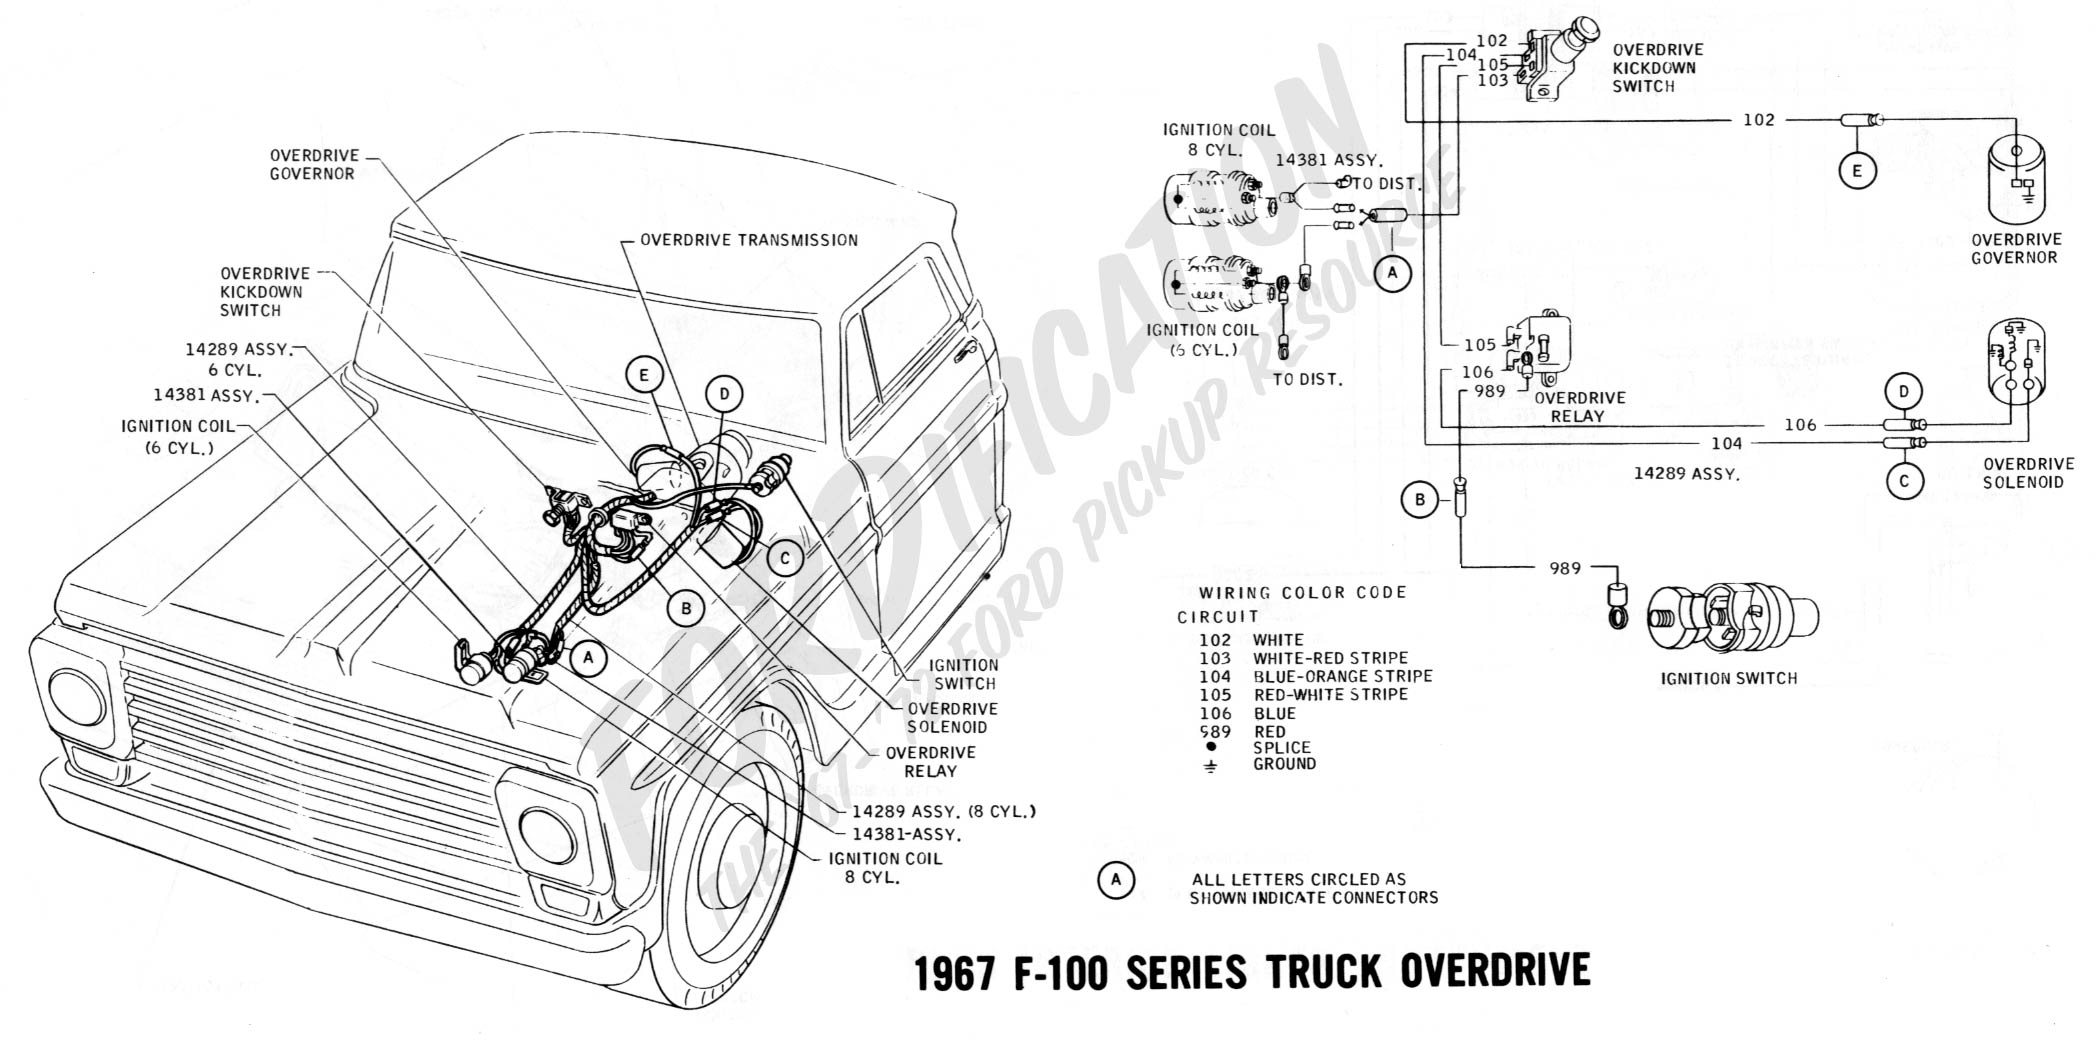 ford truck technical drawings and schematics section h wiring rh  fordification com 2005 Ford F-150 Wiring Schematic 1997 Ford F-150 Wiring  Diagram